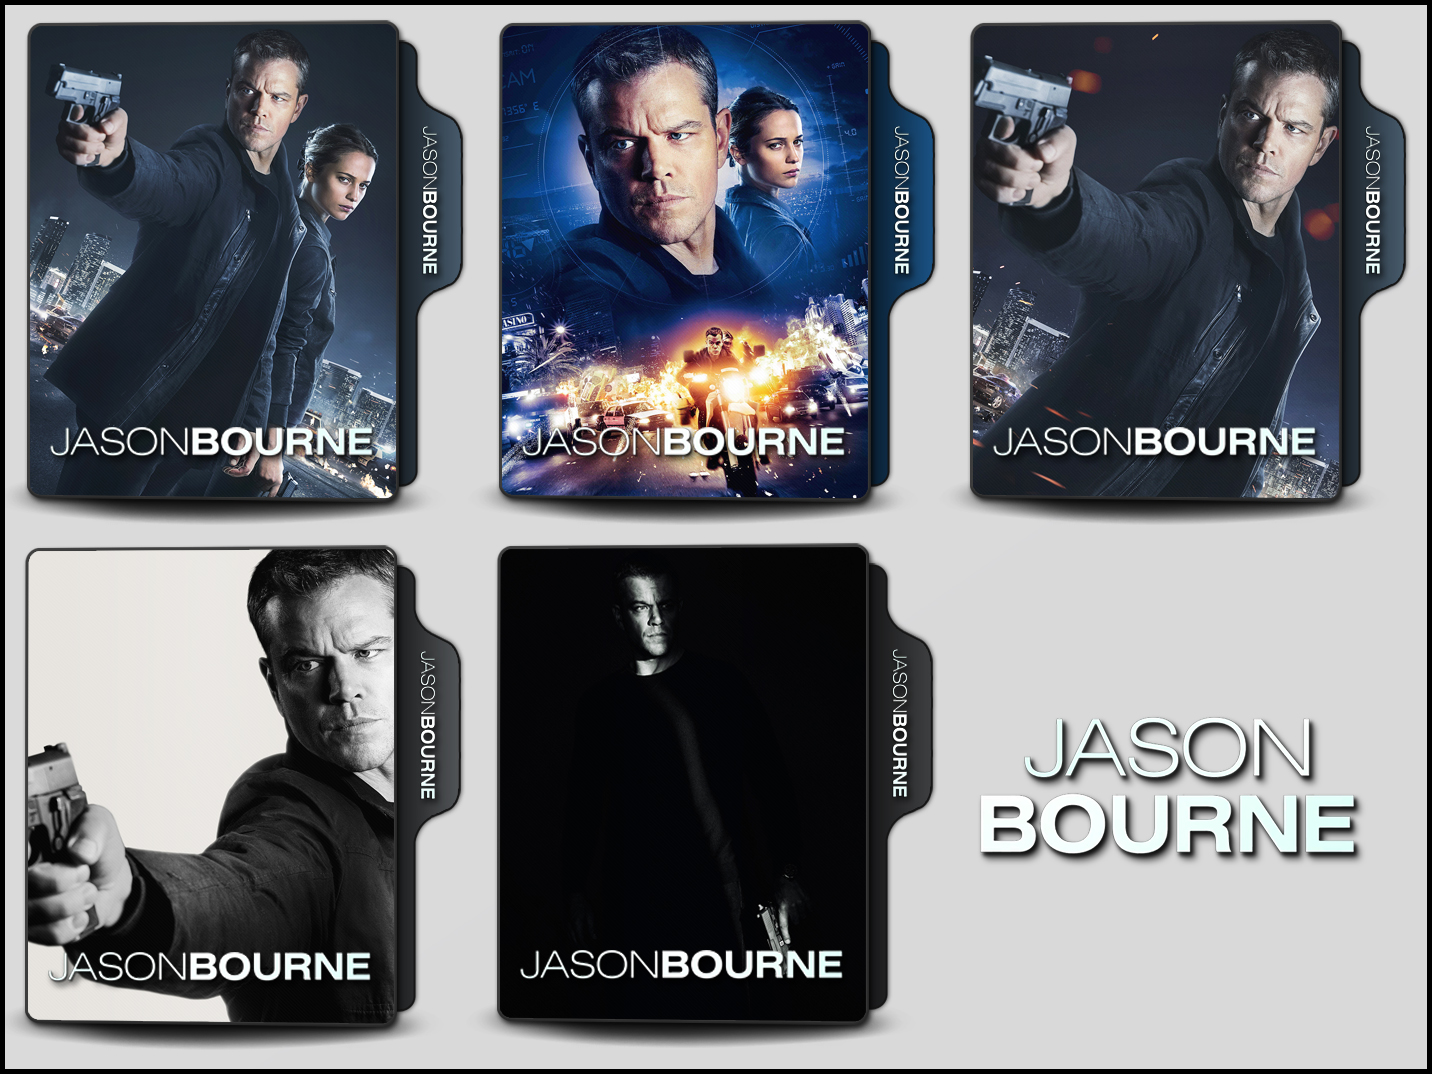 Jason Bourne 2016 Folder Icons By Onlystylematters On Deviantart